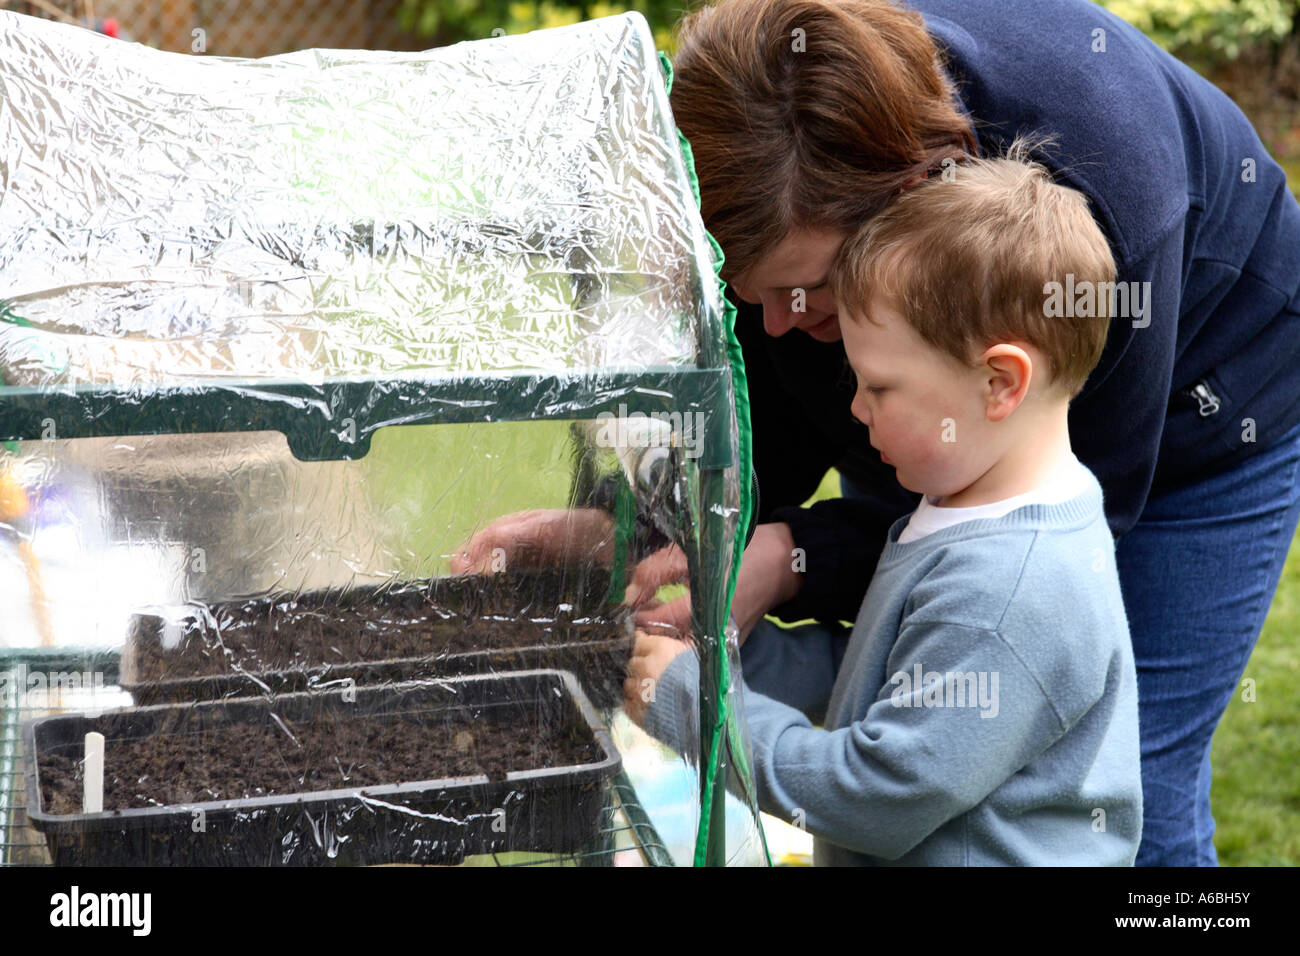 Mother helping her young son place planted seed trays into small plastic greenhouse for germination in early spring Stock Photo